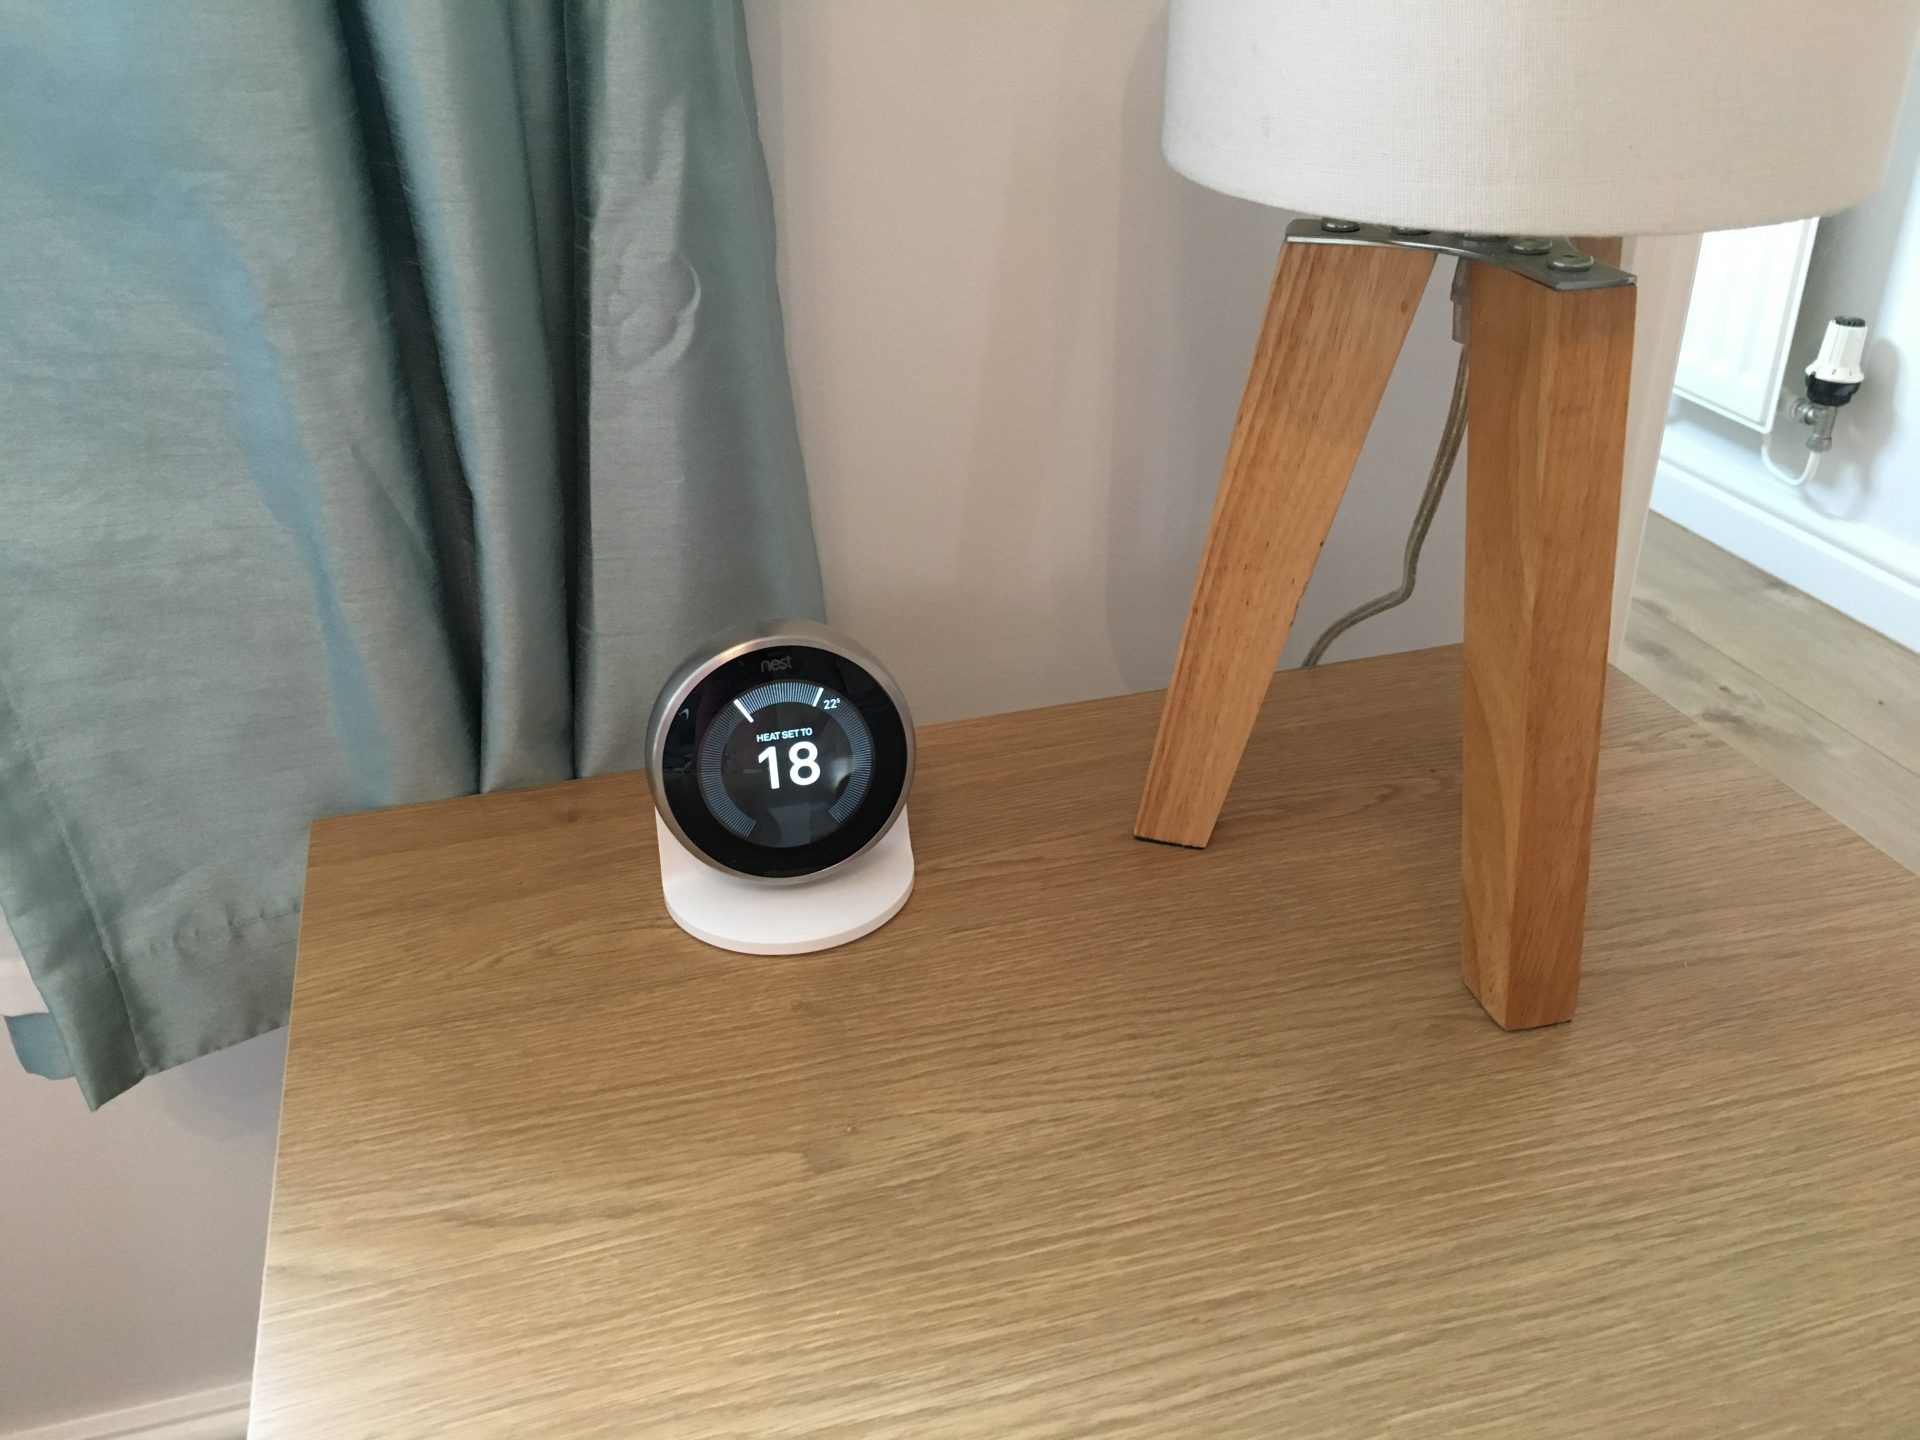 How to install the Nest Learning Thermostat (3rd Gen) in a Y